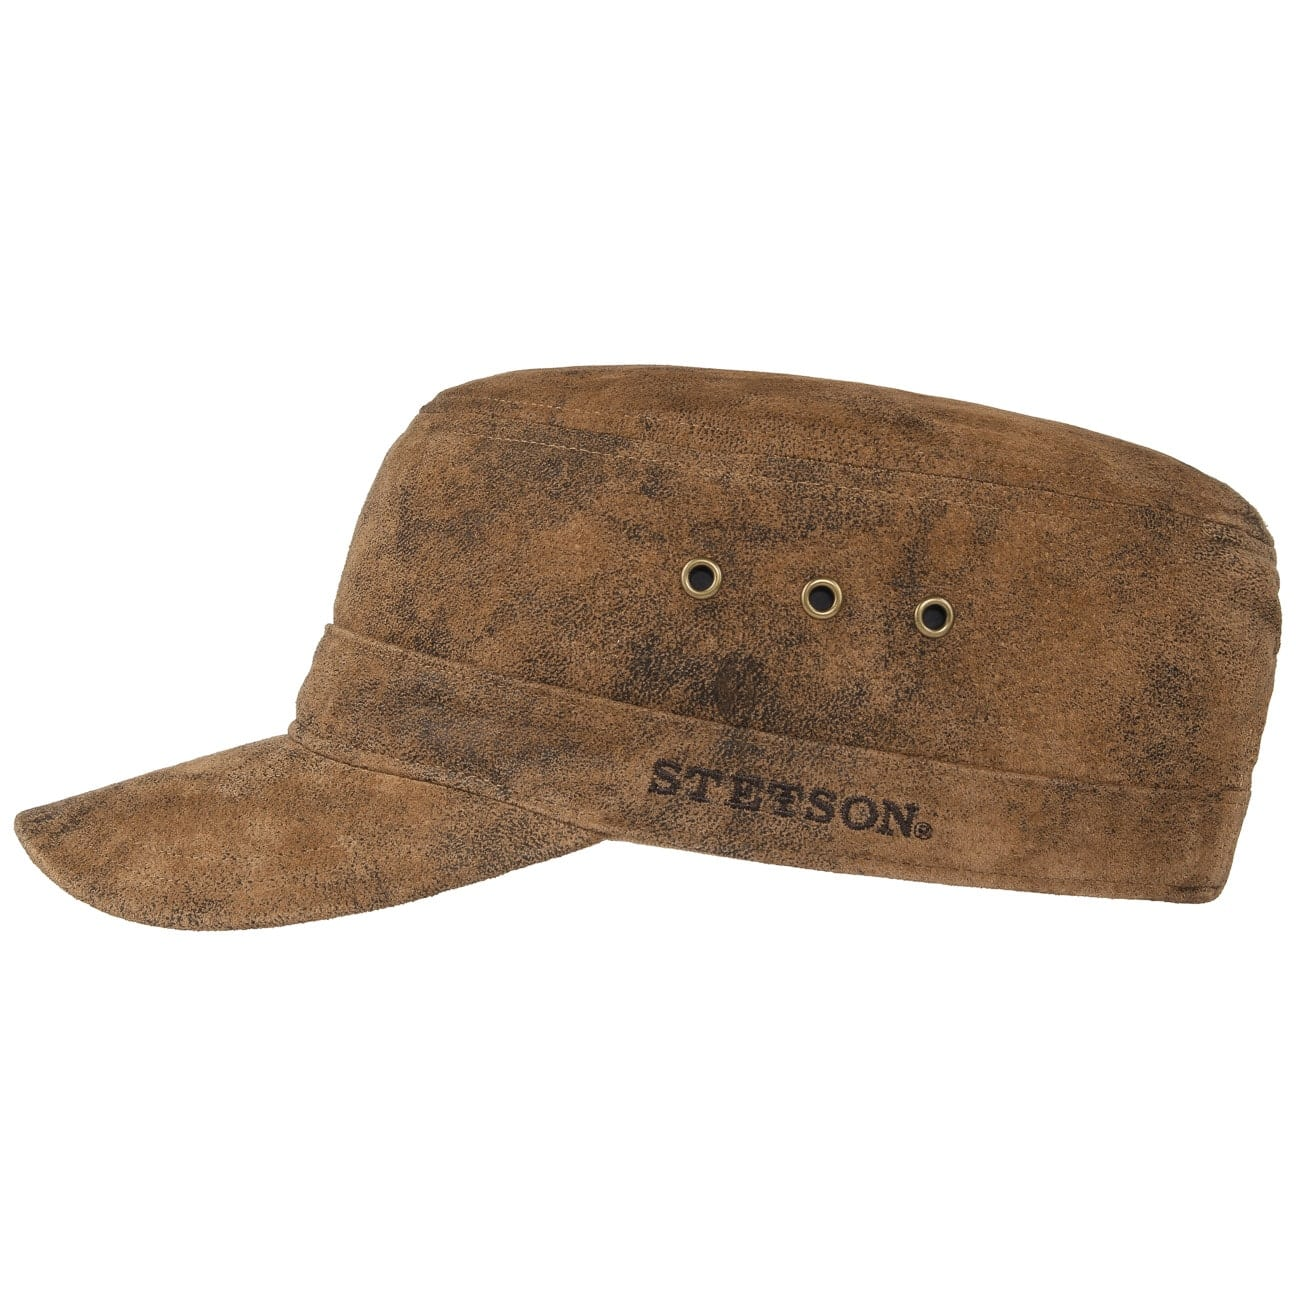 raymore-pigskin-armycap-by-stetson-sommercap, 69.00 EUR @ hutshopping-de